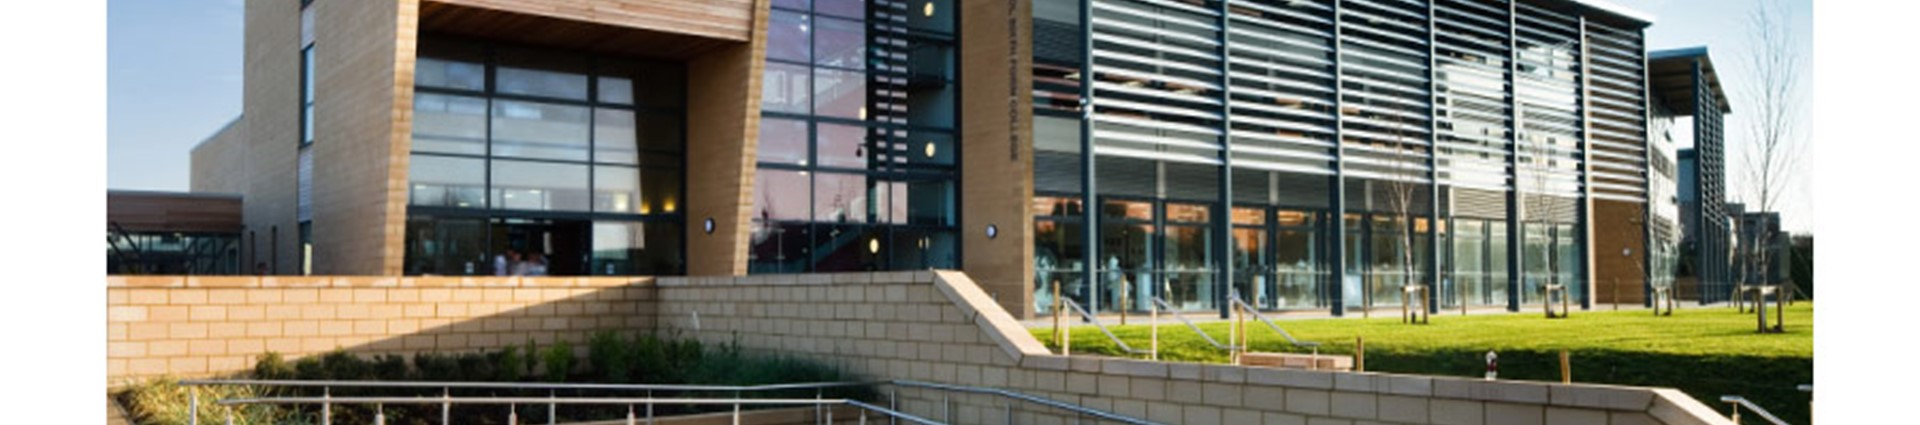 Blackpool college architecture and masonry